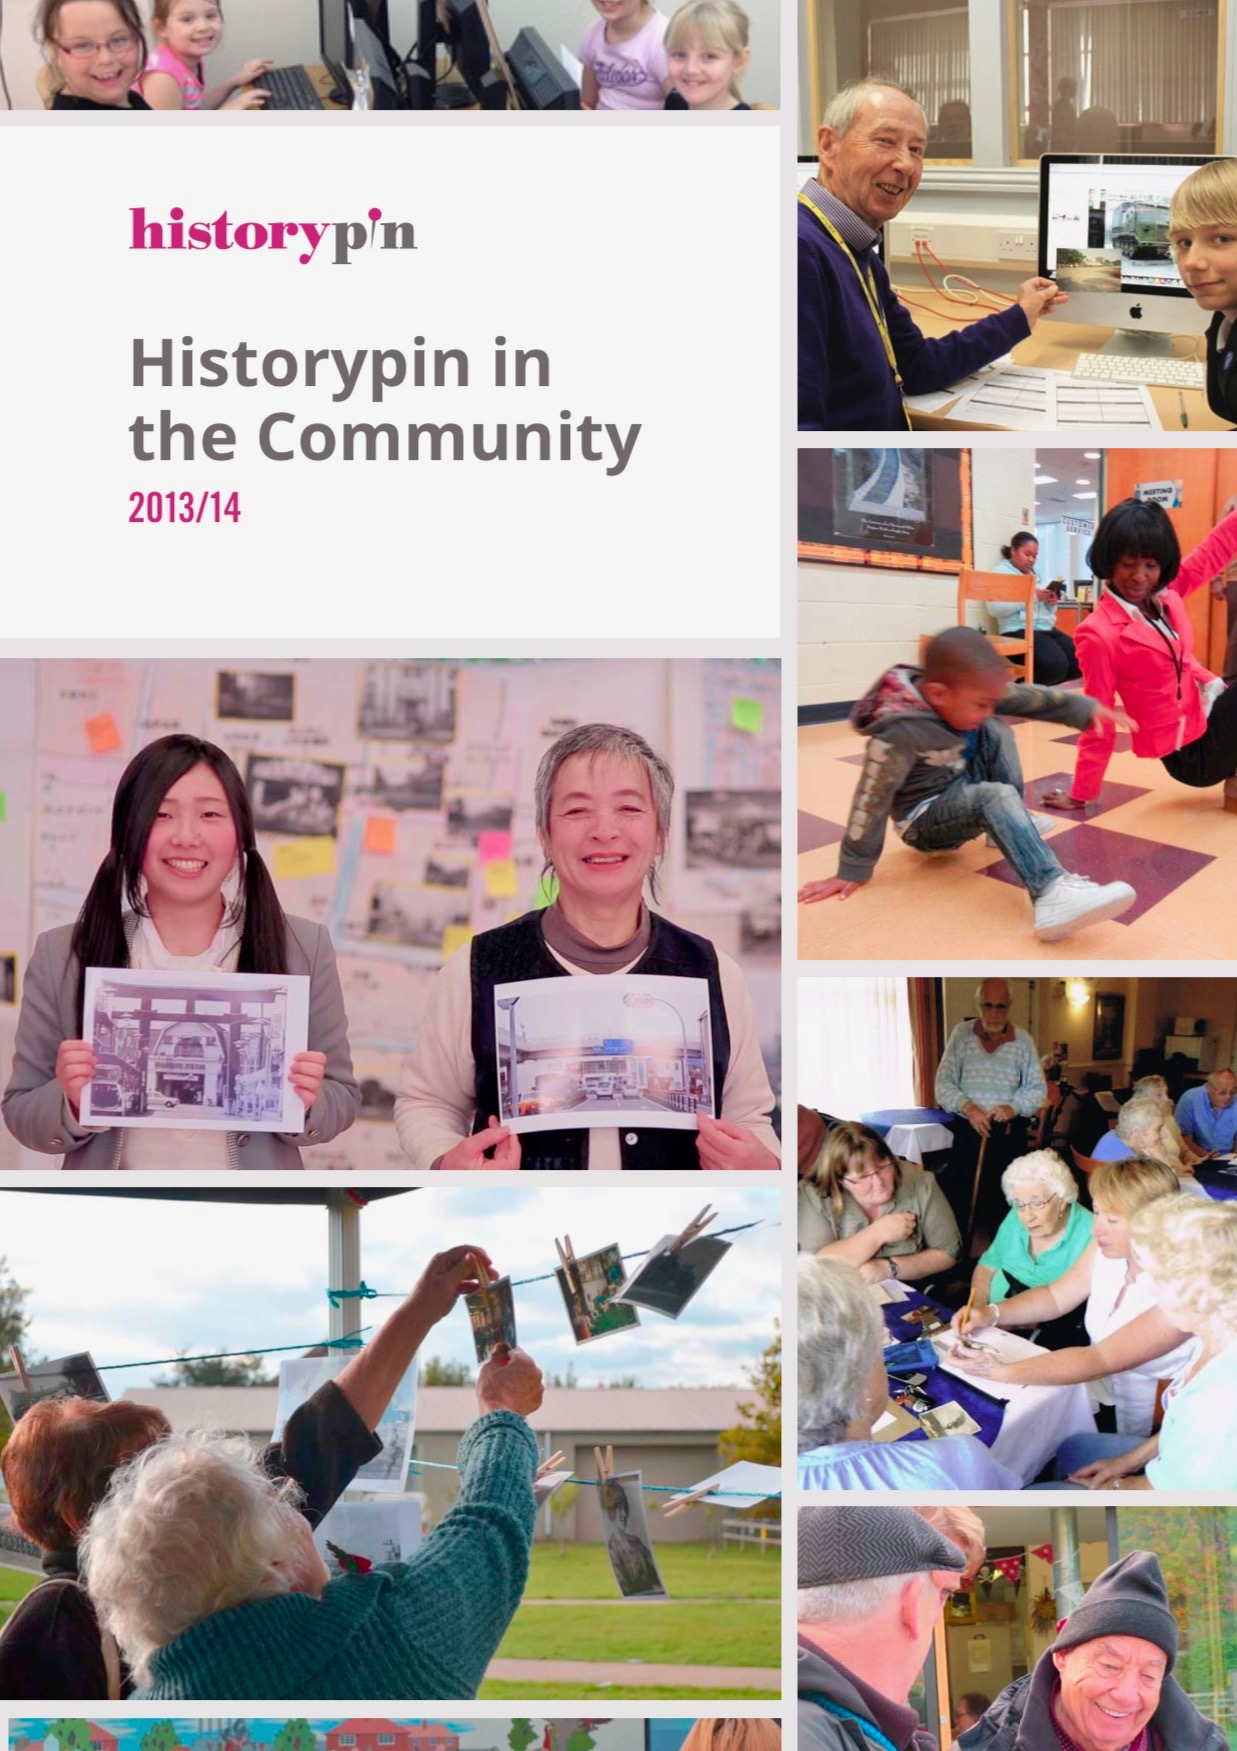 HISTORYPIN IN THE COMMUNITY (Publication)